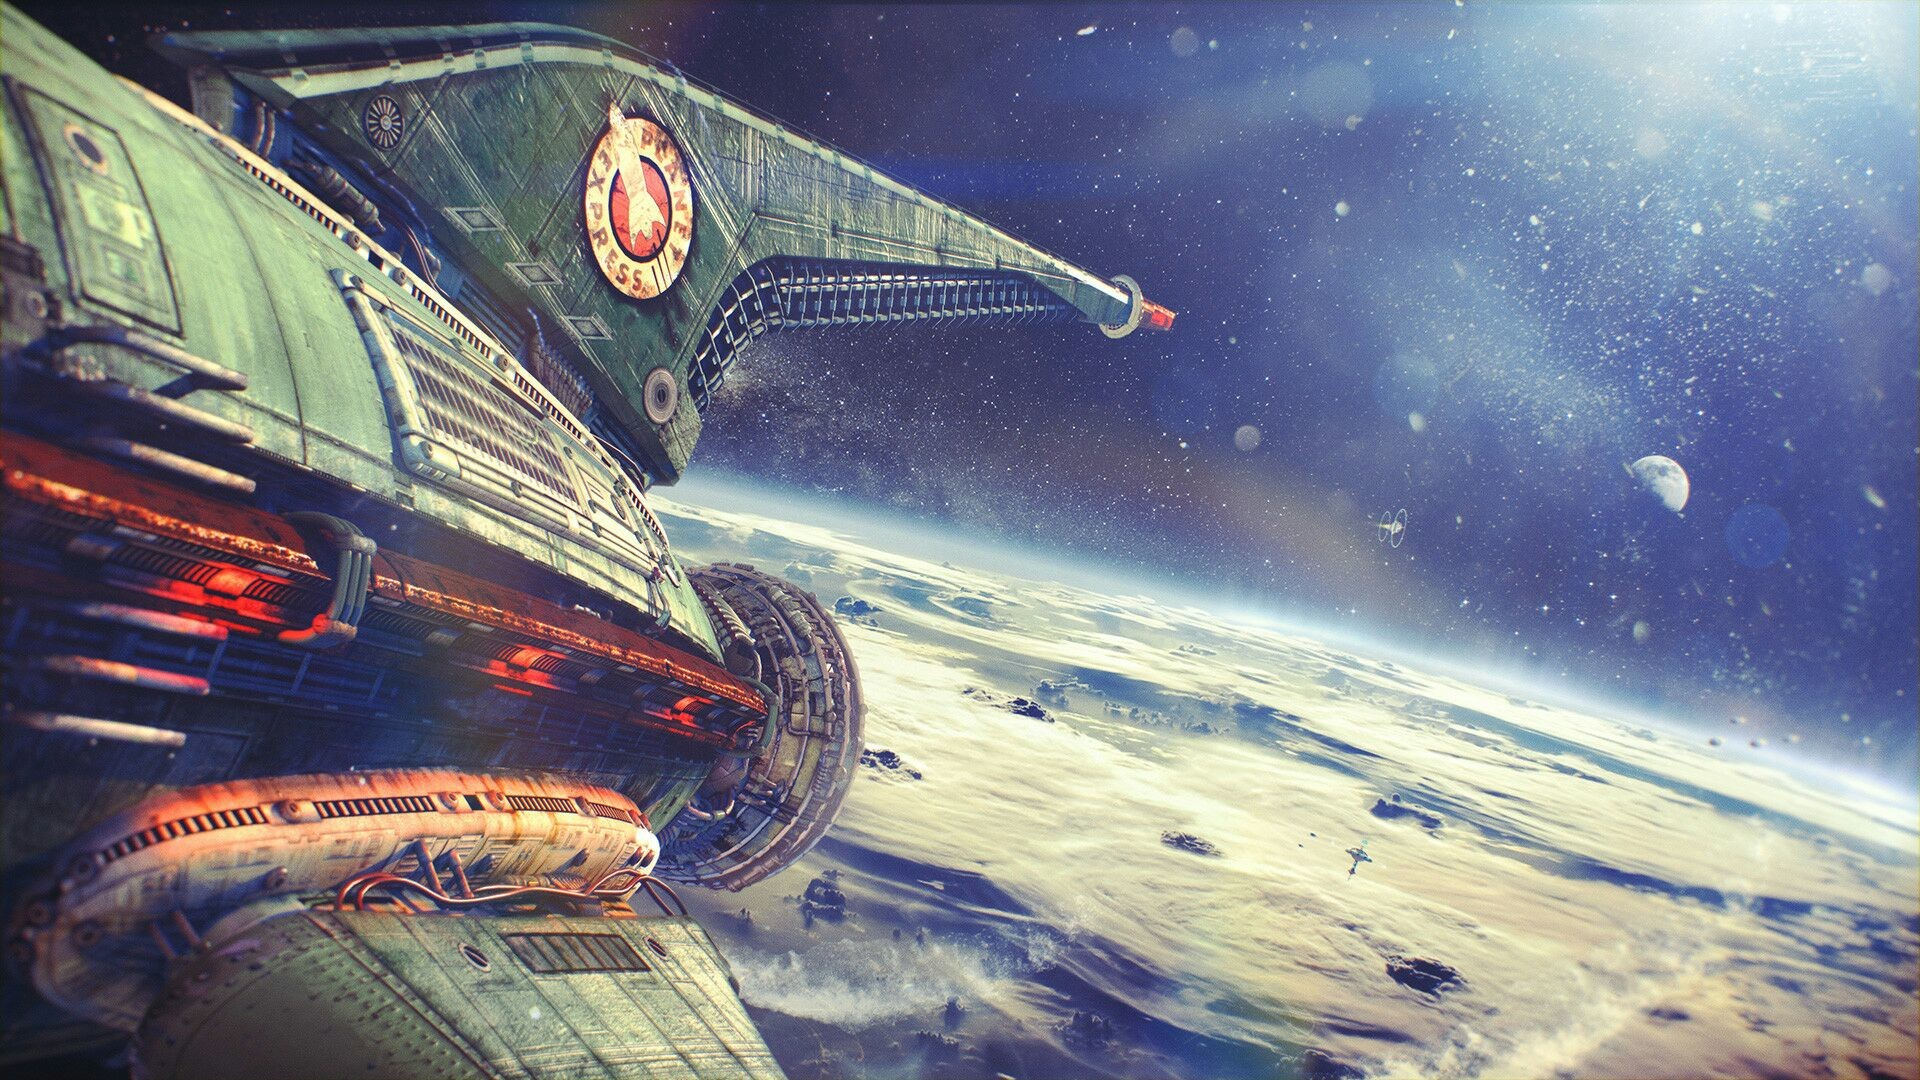 1920x1080 Real-Life Futurama Is Gorgeous - Planet Express Ship Leaving Earth (Alexey  Zakharov)